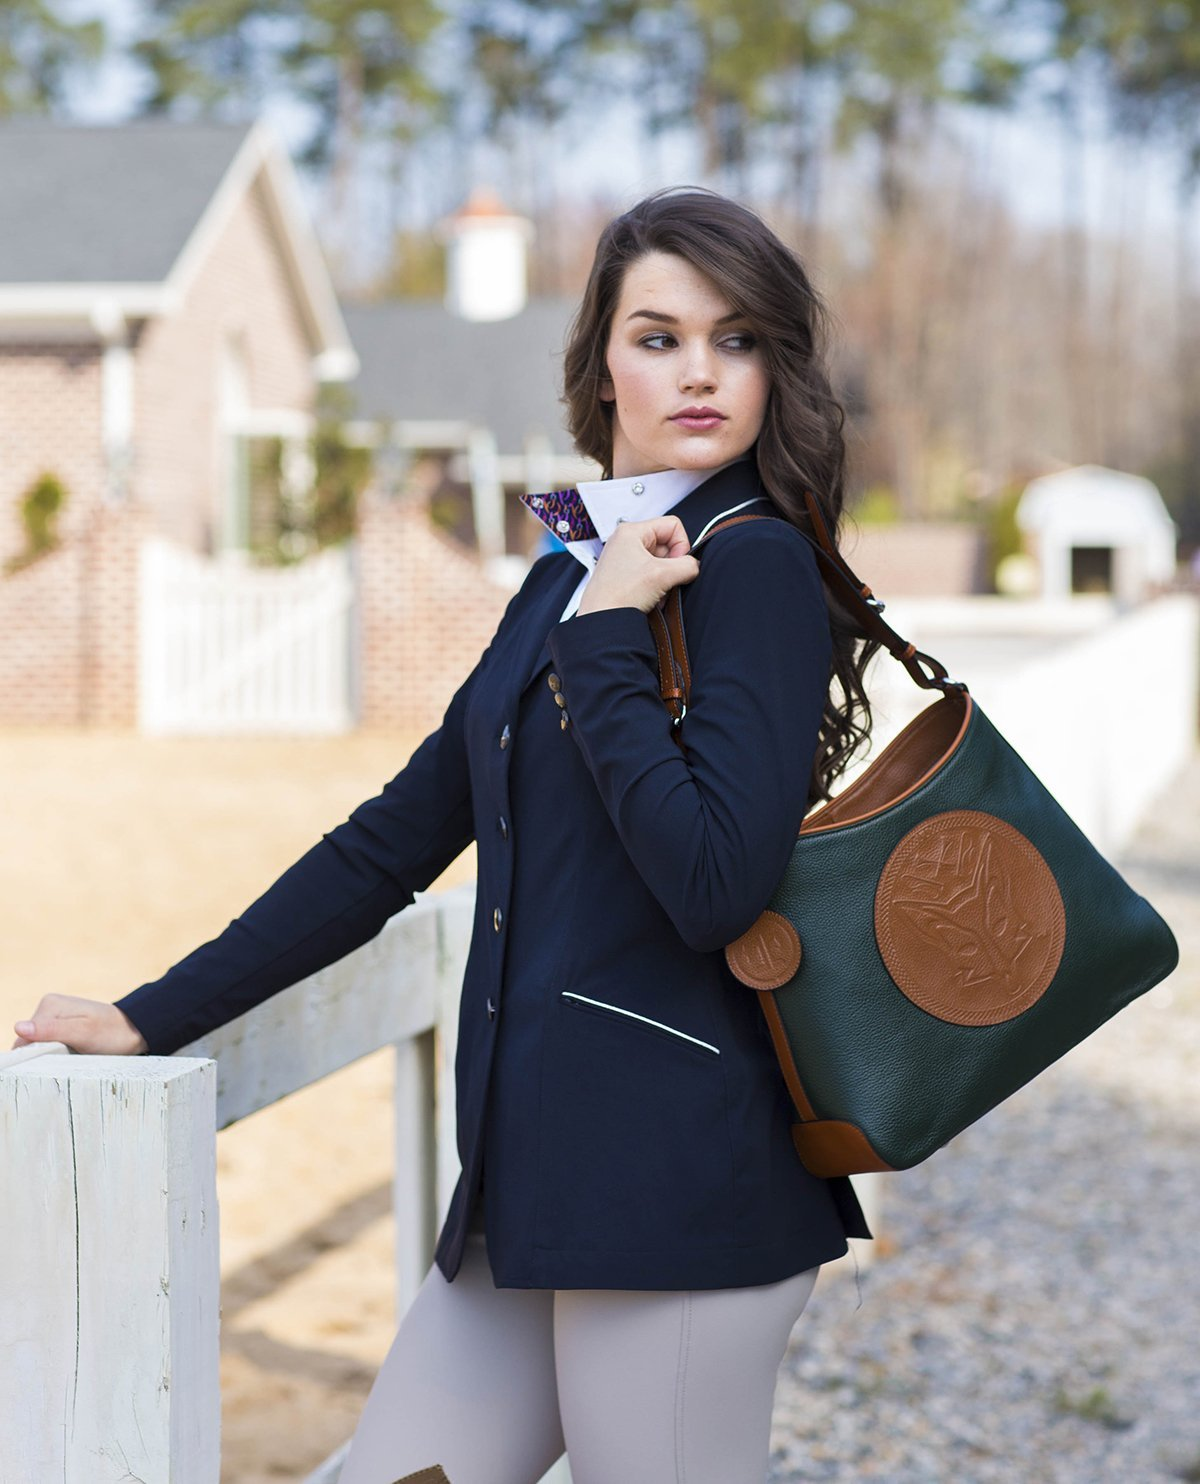 Tucker Tweed Leather Handbags The Tweed Manor Tote: Dressage